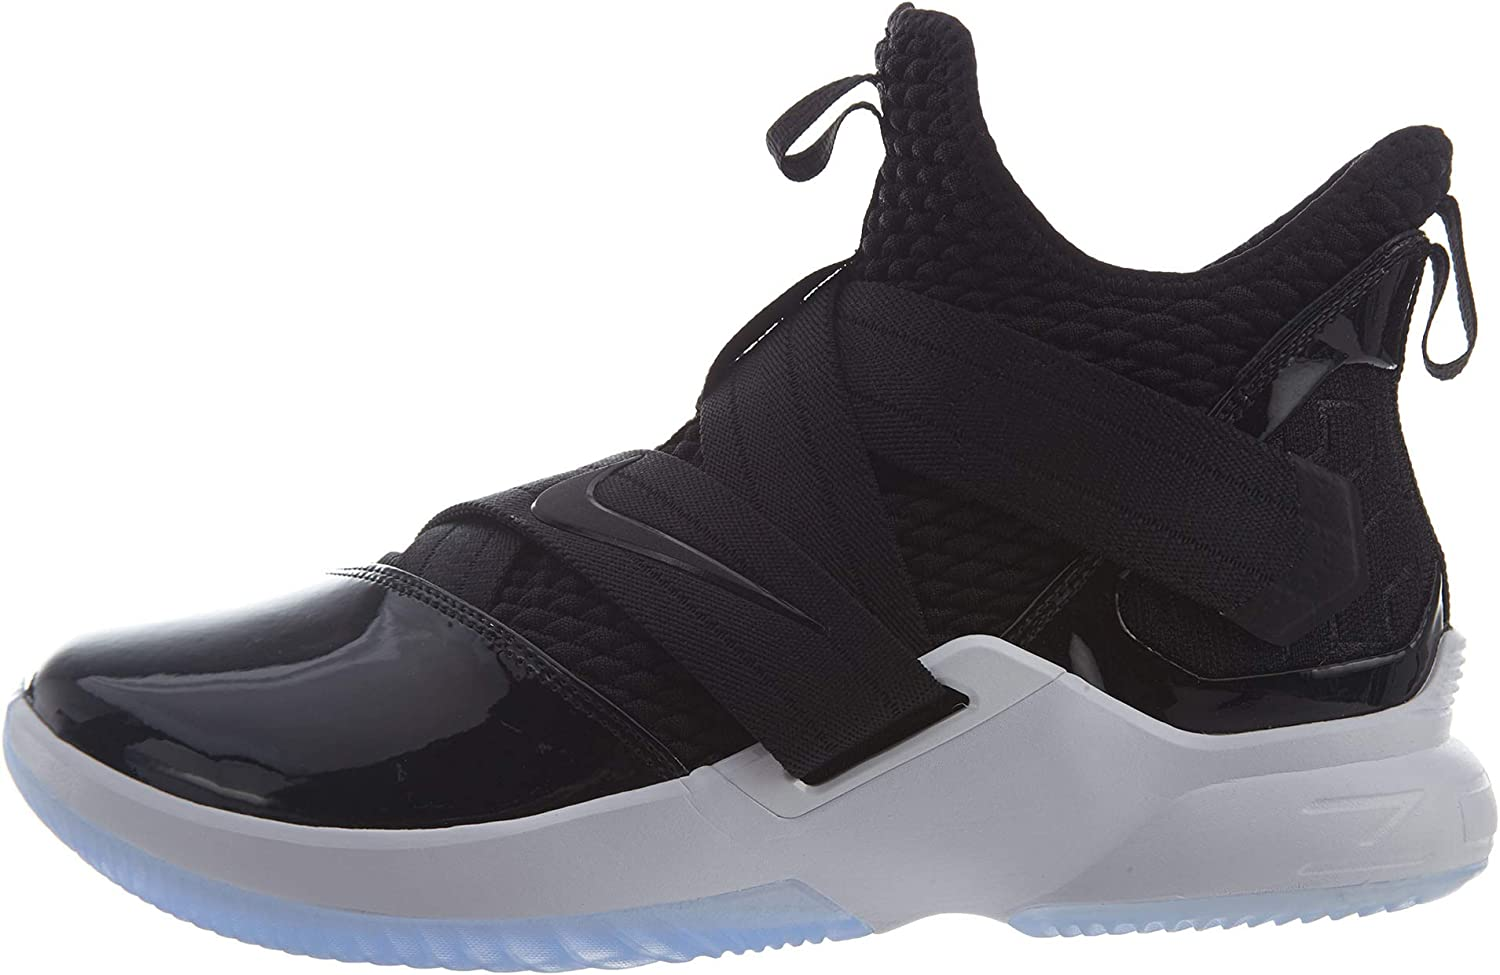 soldier 12 price